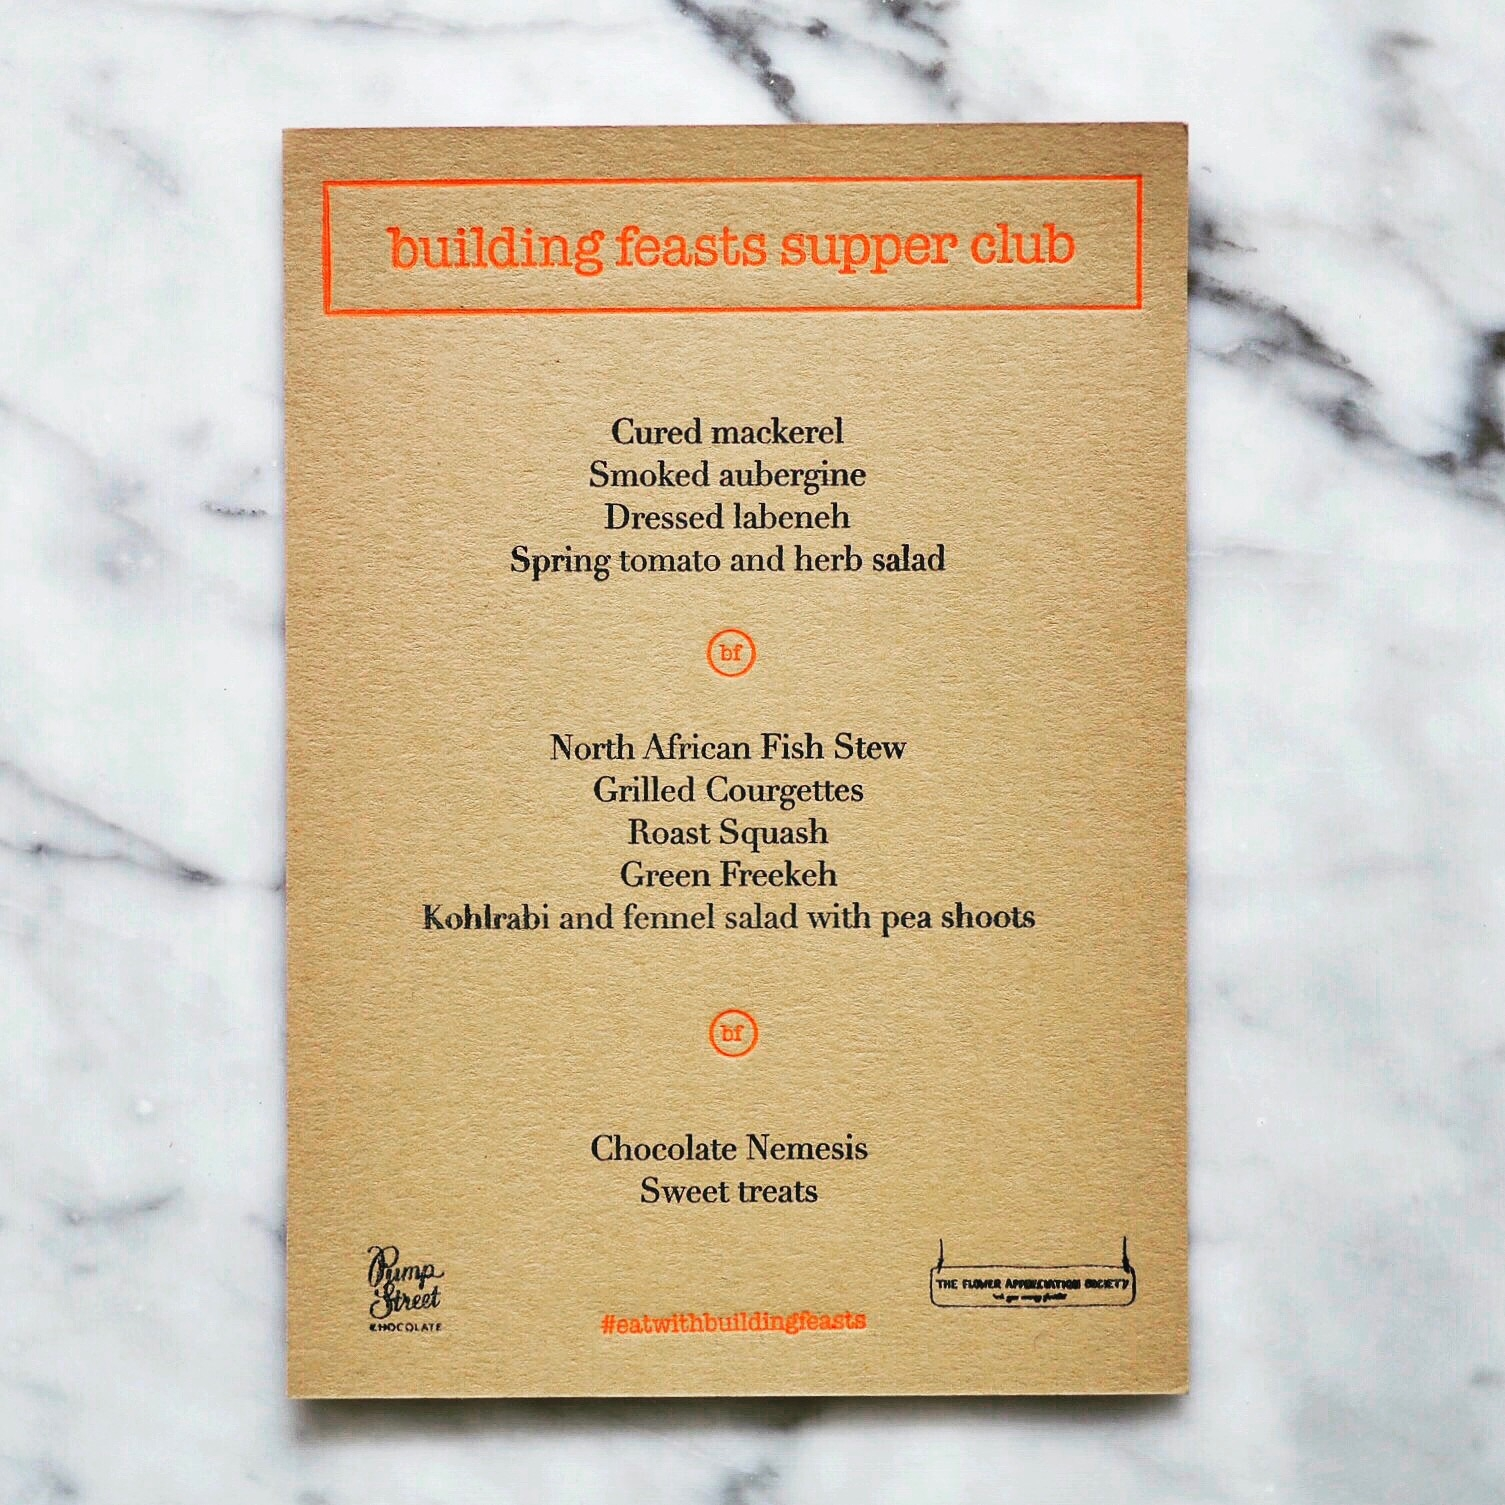 Our First Supper Club menu